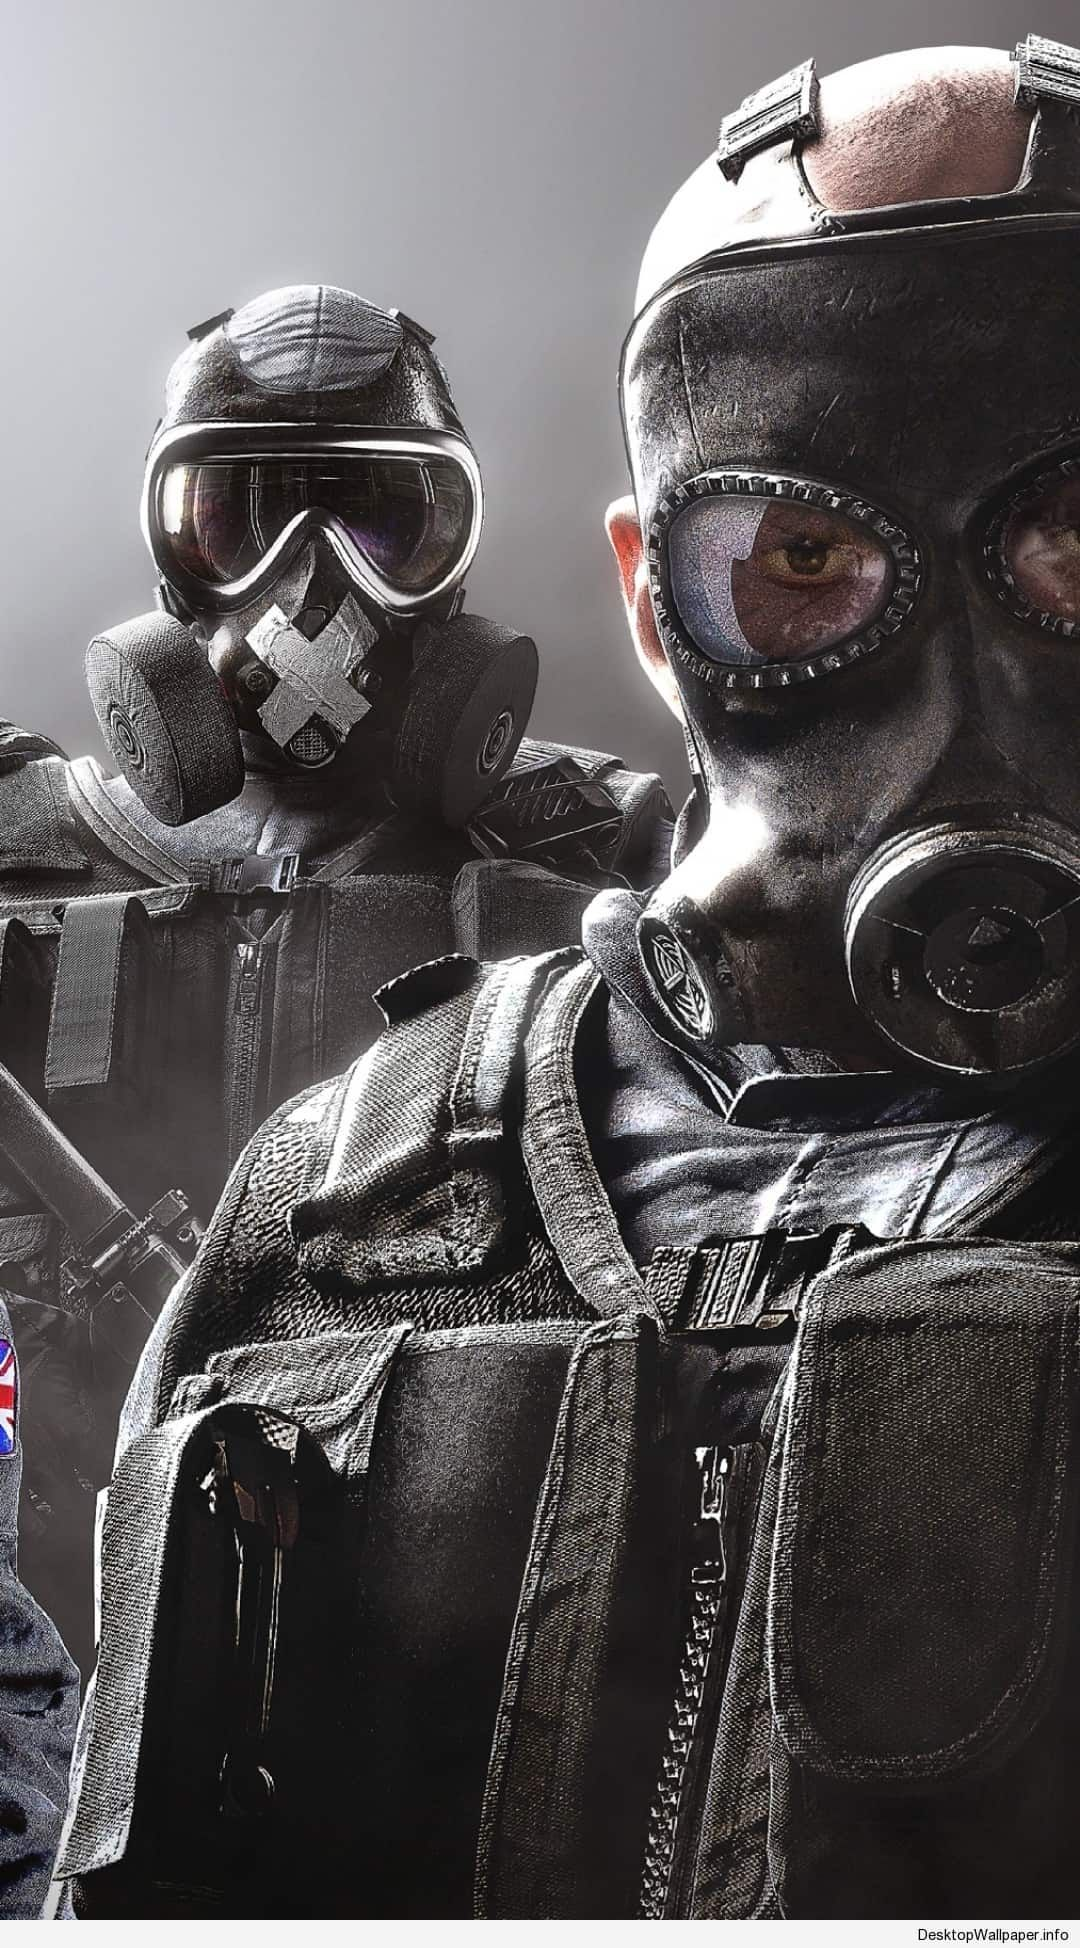 Pin By Julia On Hd Wallpapers Tom Clancy S Rainbow Six Iphone